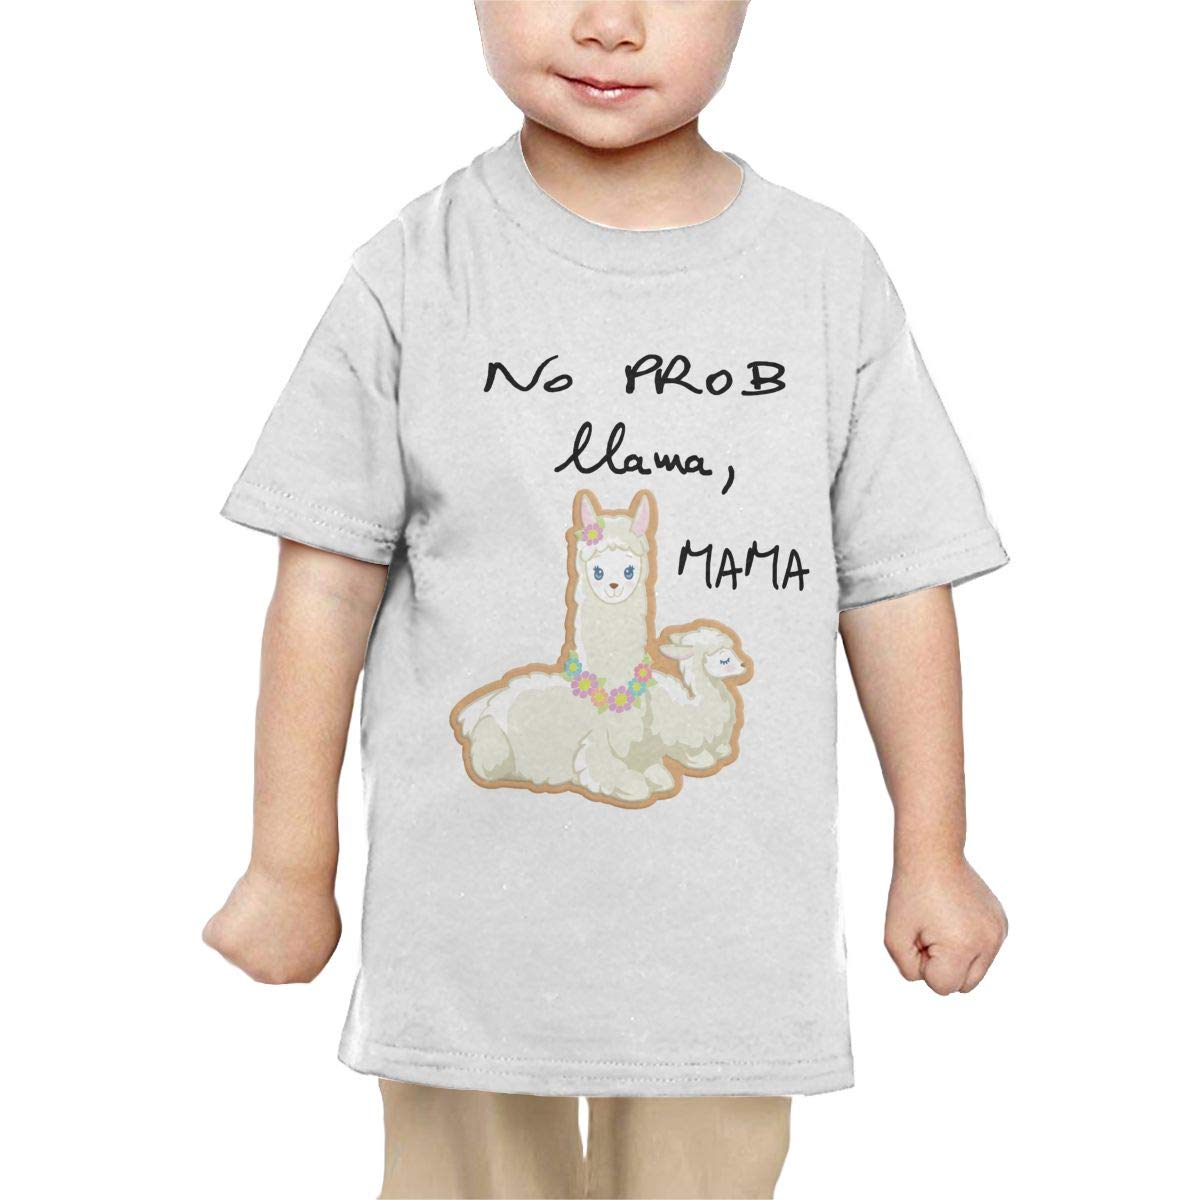 Chunmmmmm No Prmb Mama Baby Girl Short Sleeve Crewneck Cotton Tshit